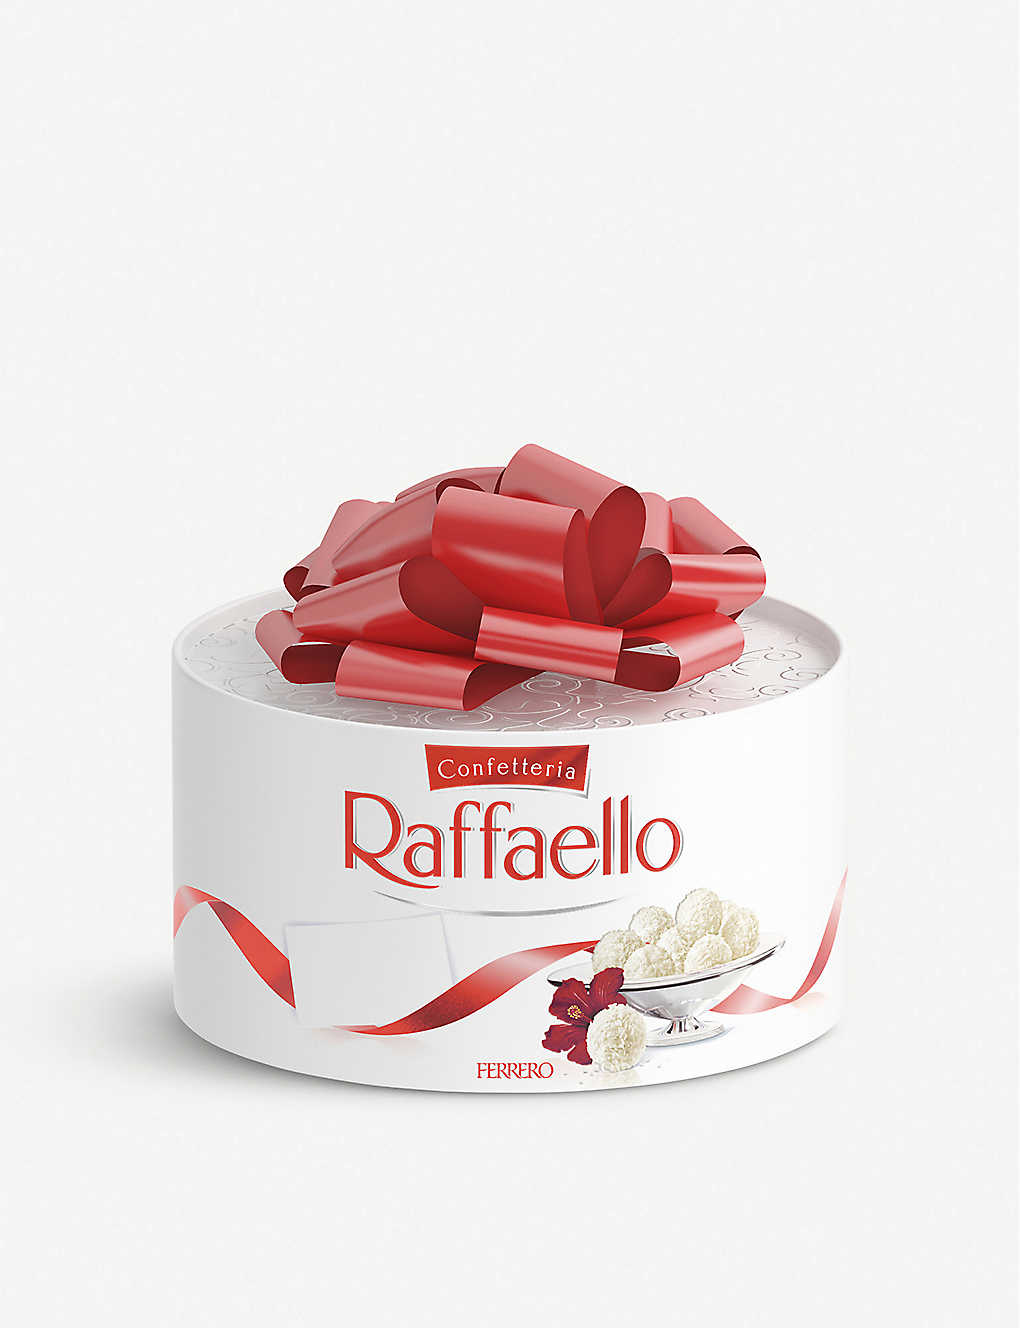 FERRERO: Raffaello chocolate gift box 200g